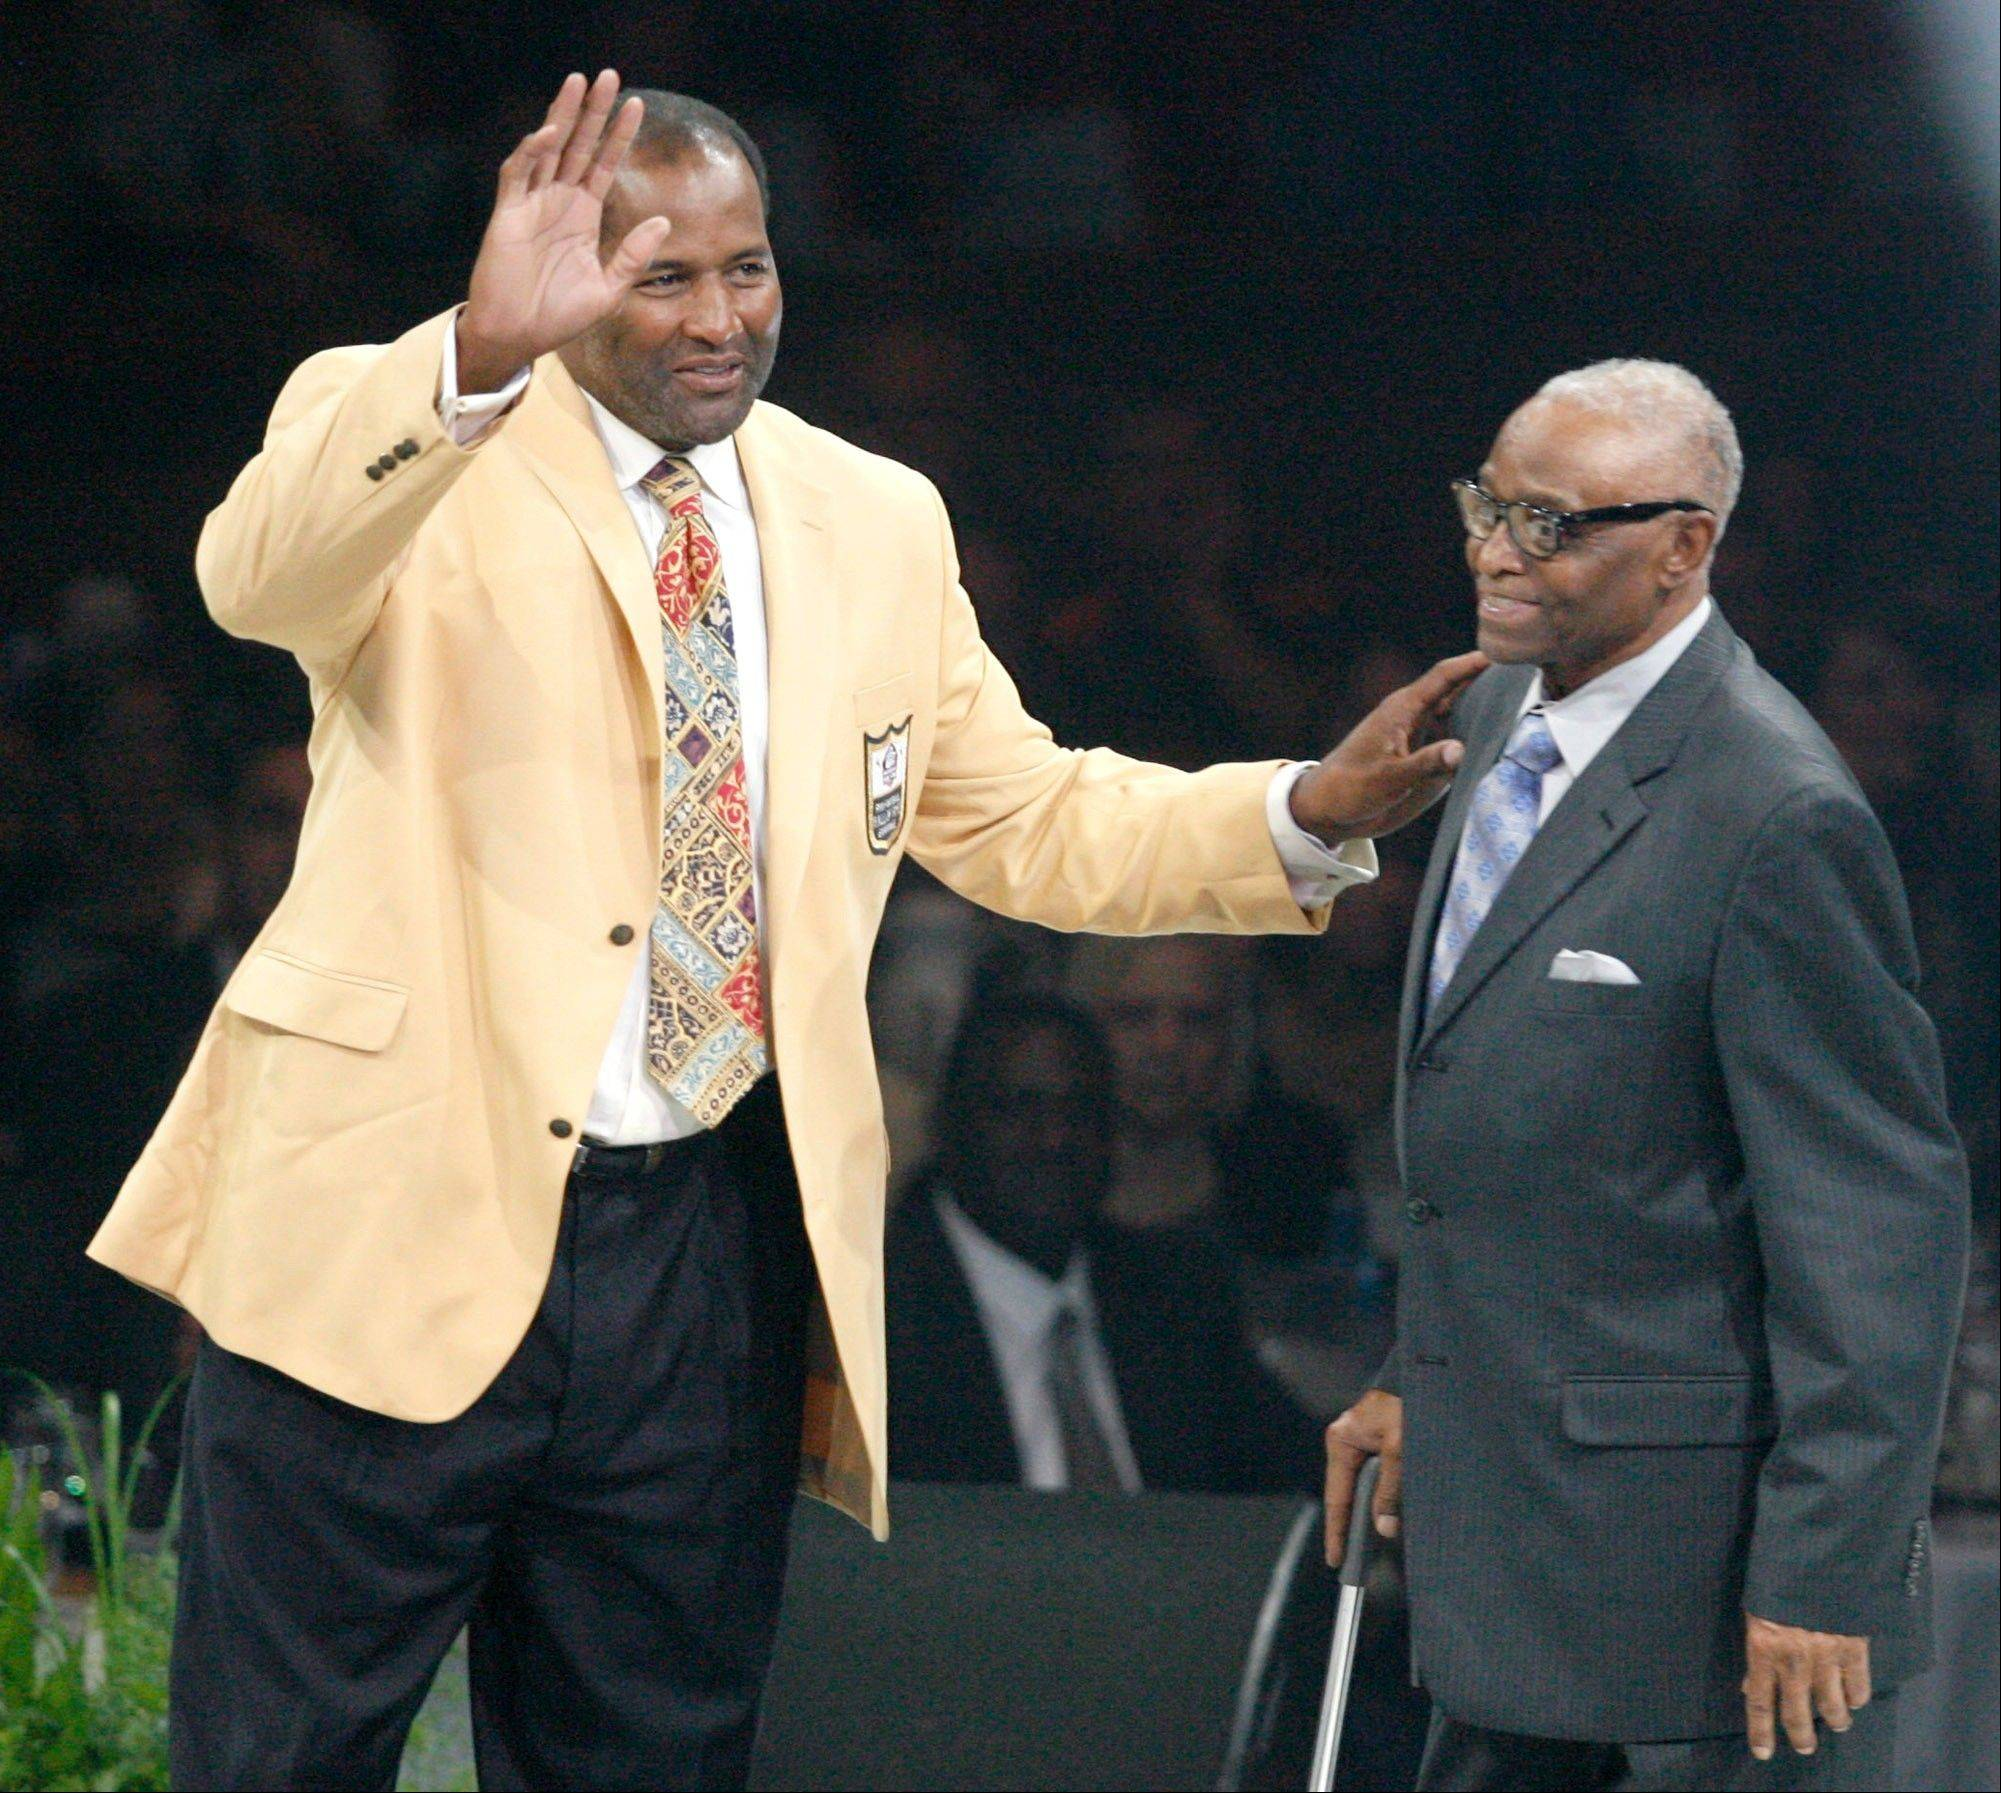 Richard Dent waves to the crowd after receiving his gold jacket from Joe Gilliam at the Pro Football Hall of Fame Festival inductees dinner Friday.